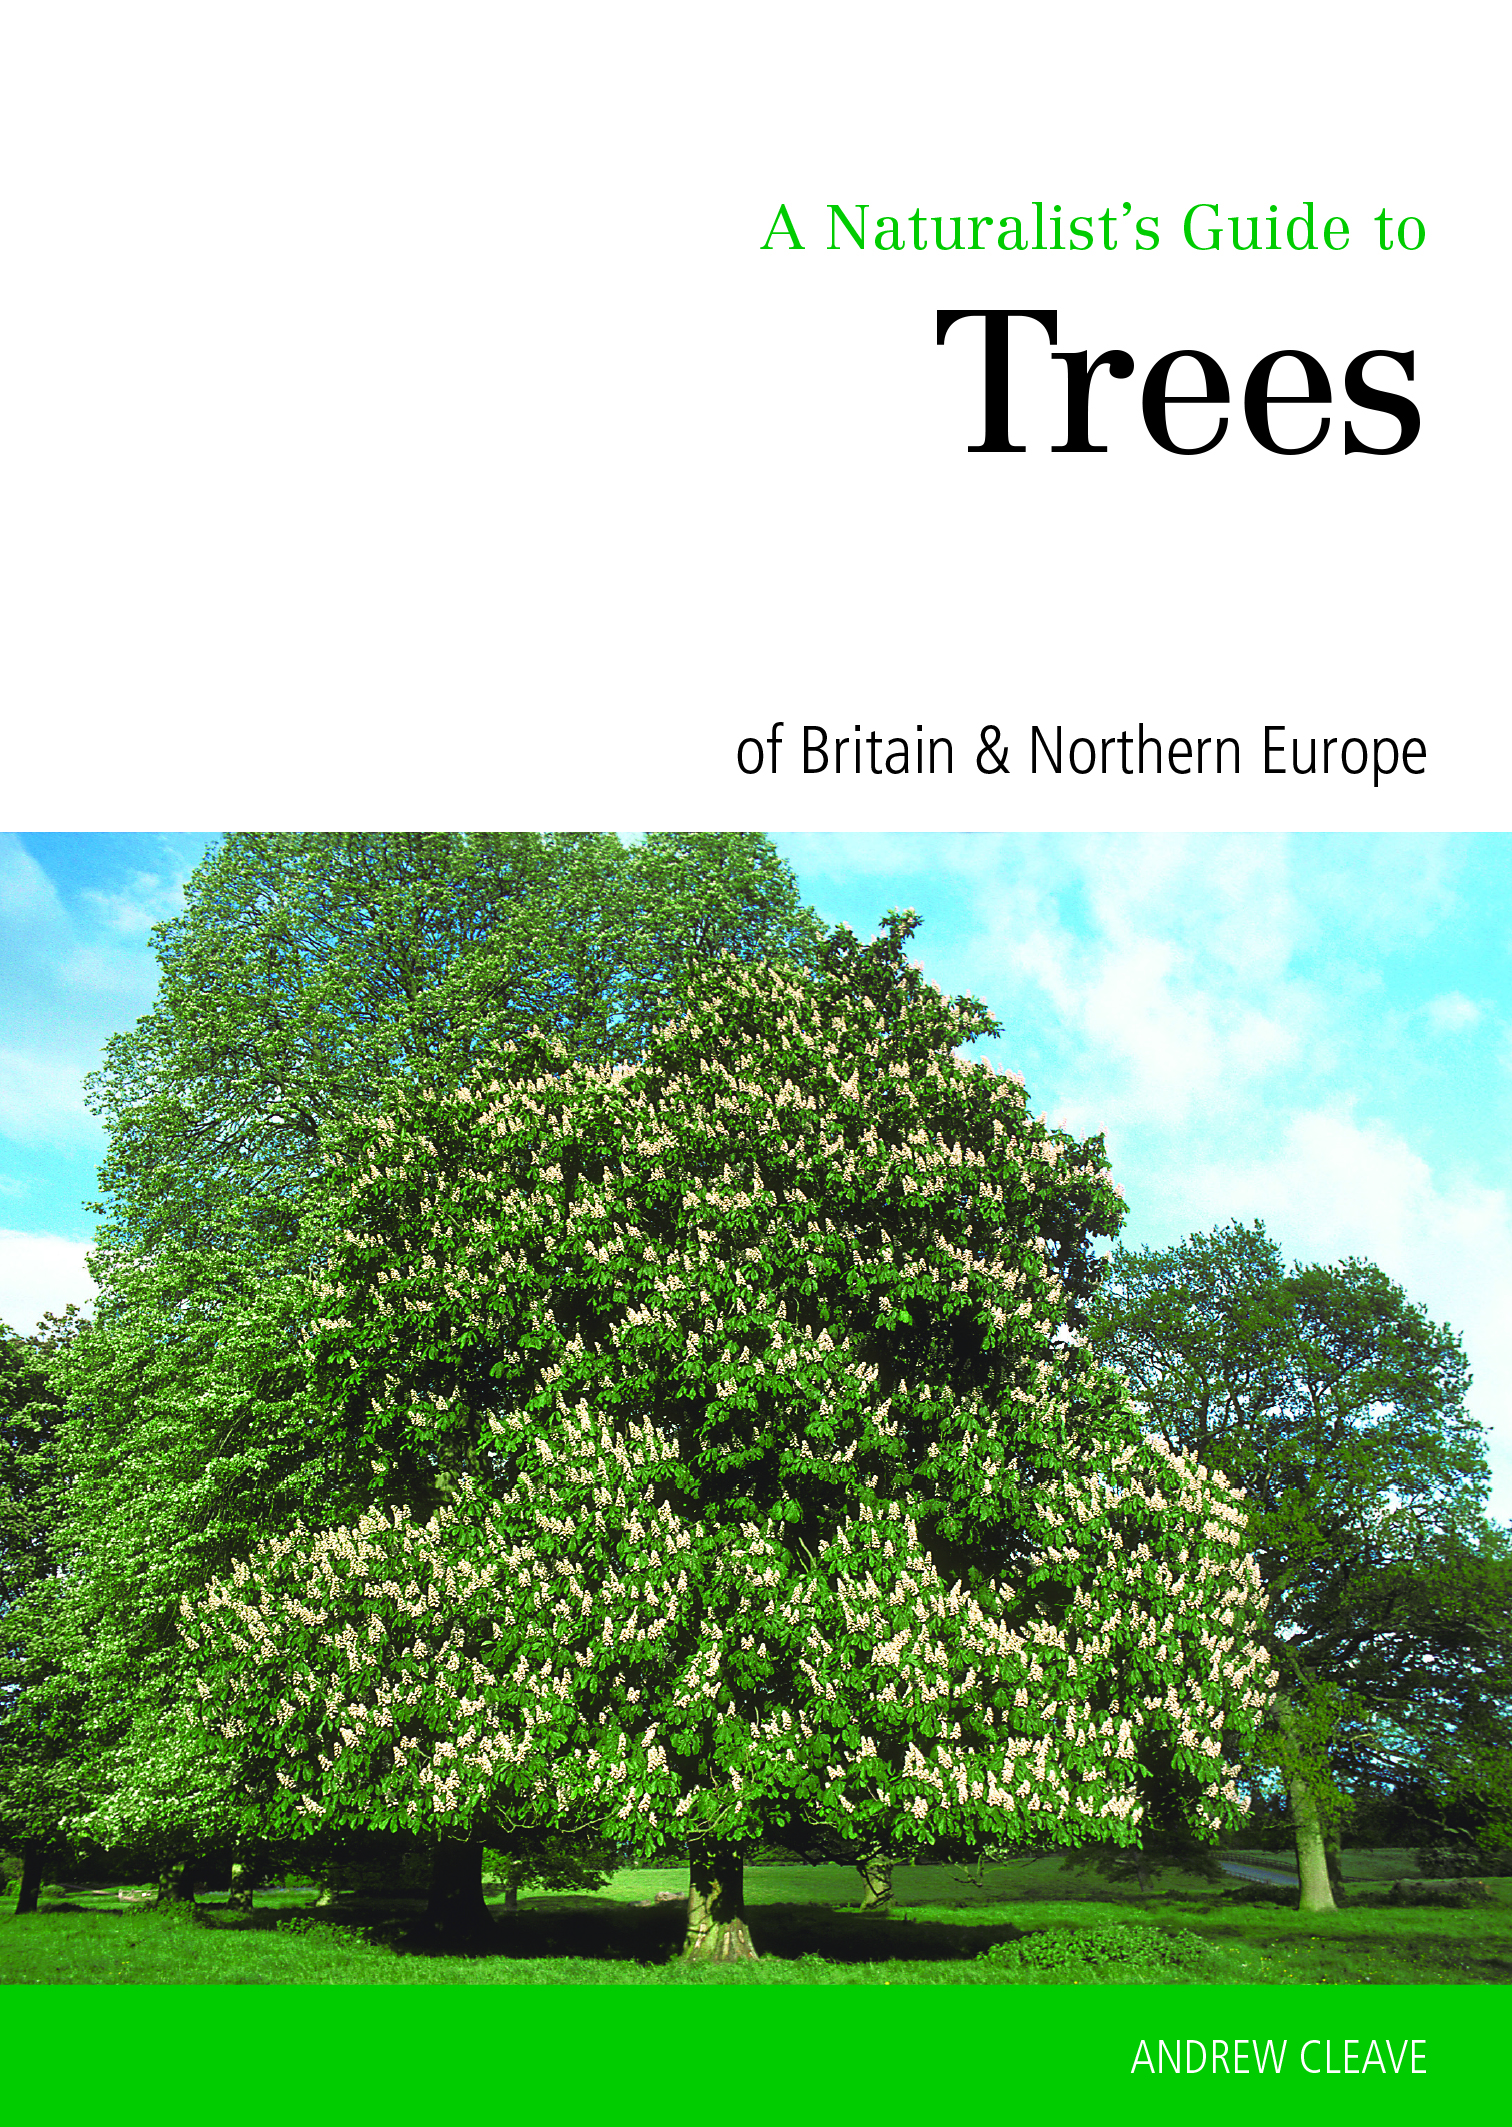 A Naturalist's Guide to the Trees of Britain & Northern Europe